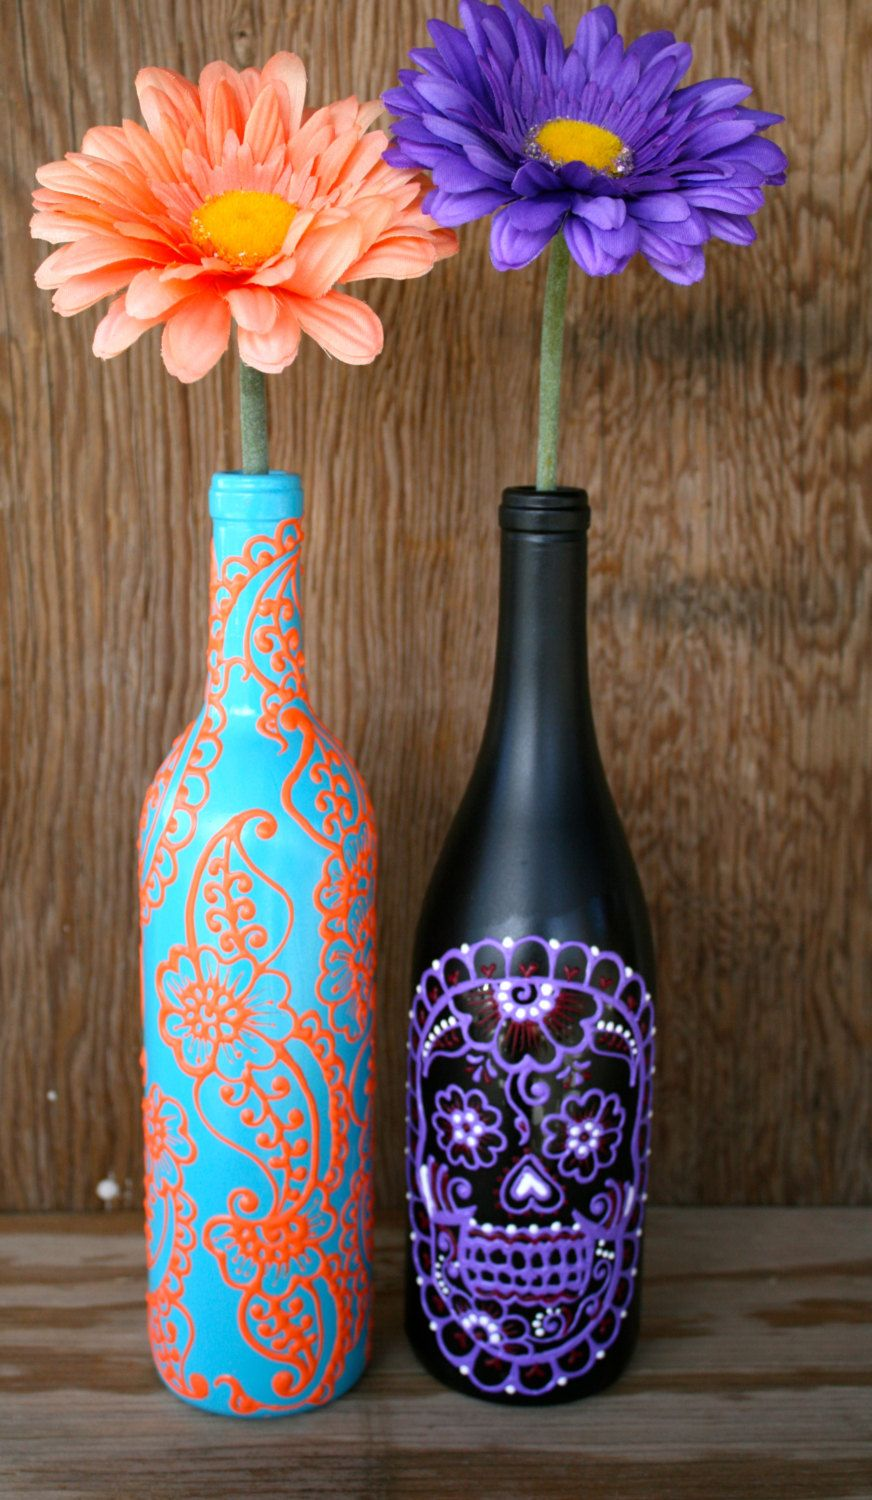 Convert glass bottles that are used into inspired paper vases that are gorgeous